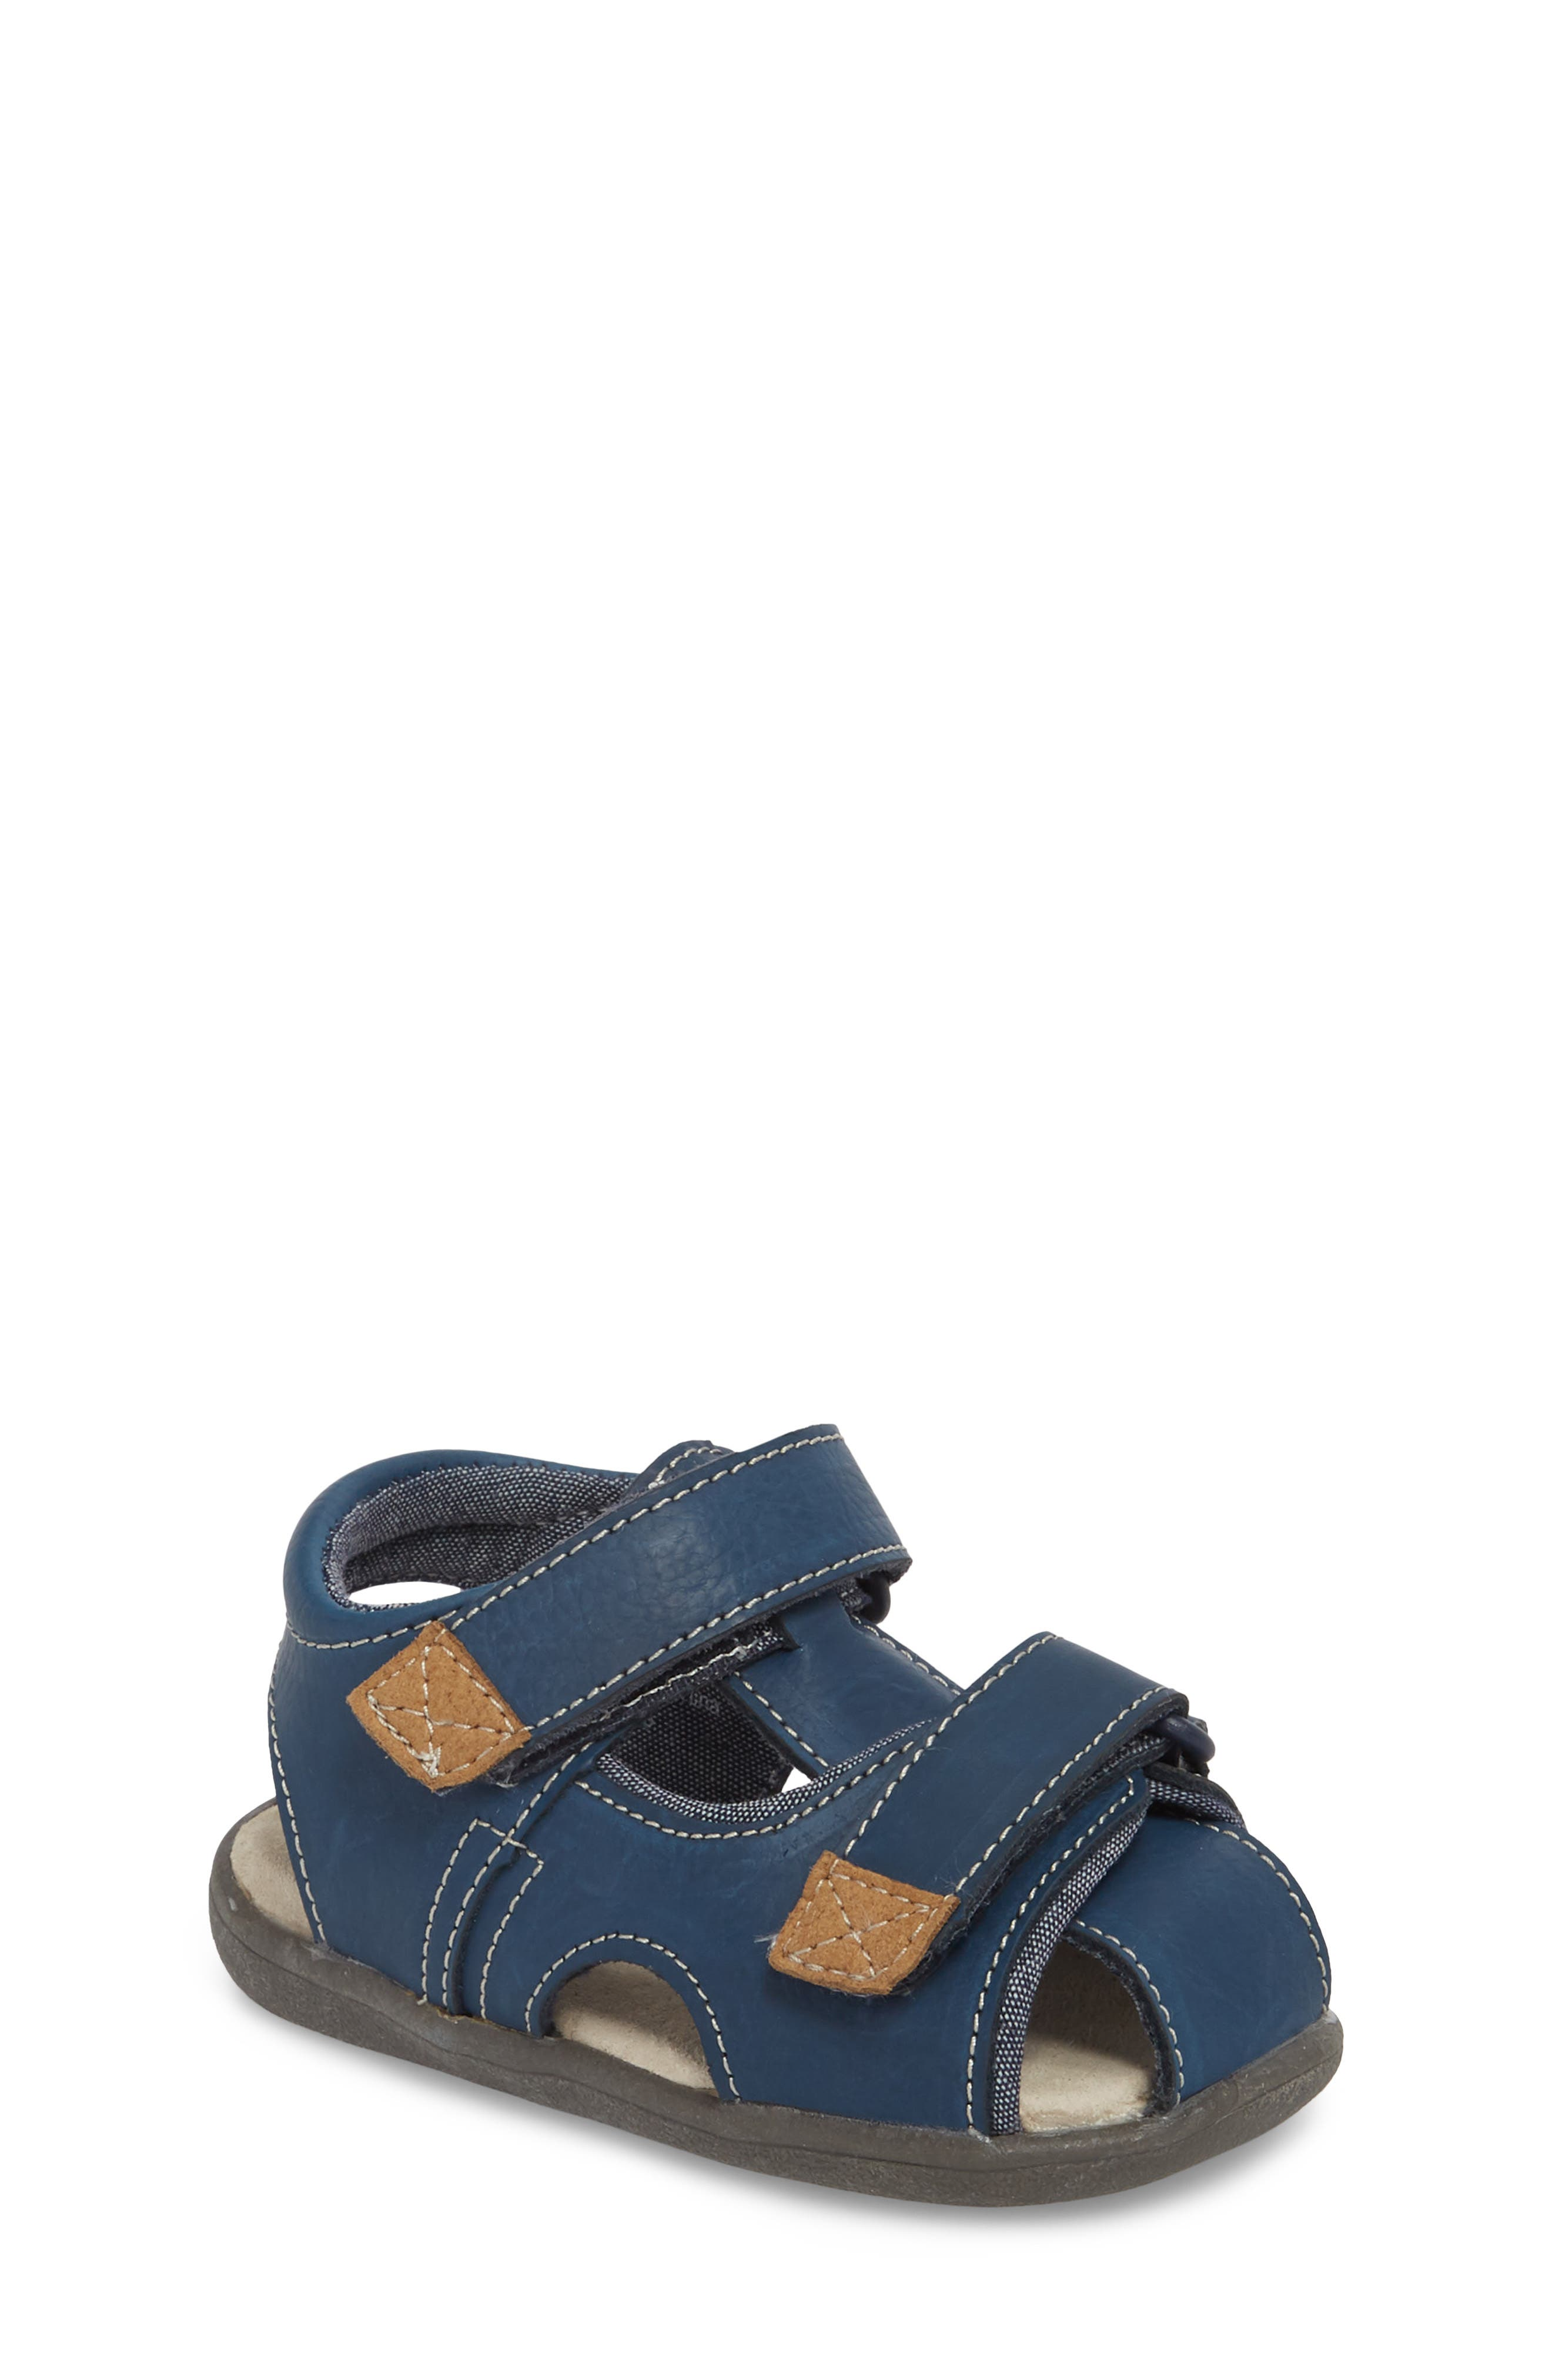 Corey Fisherman Sandal,                         Main,                         color, 400